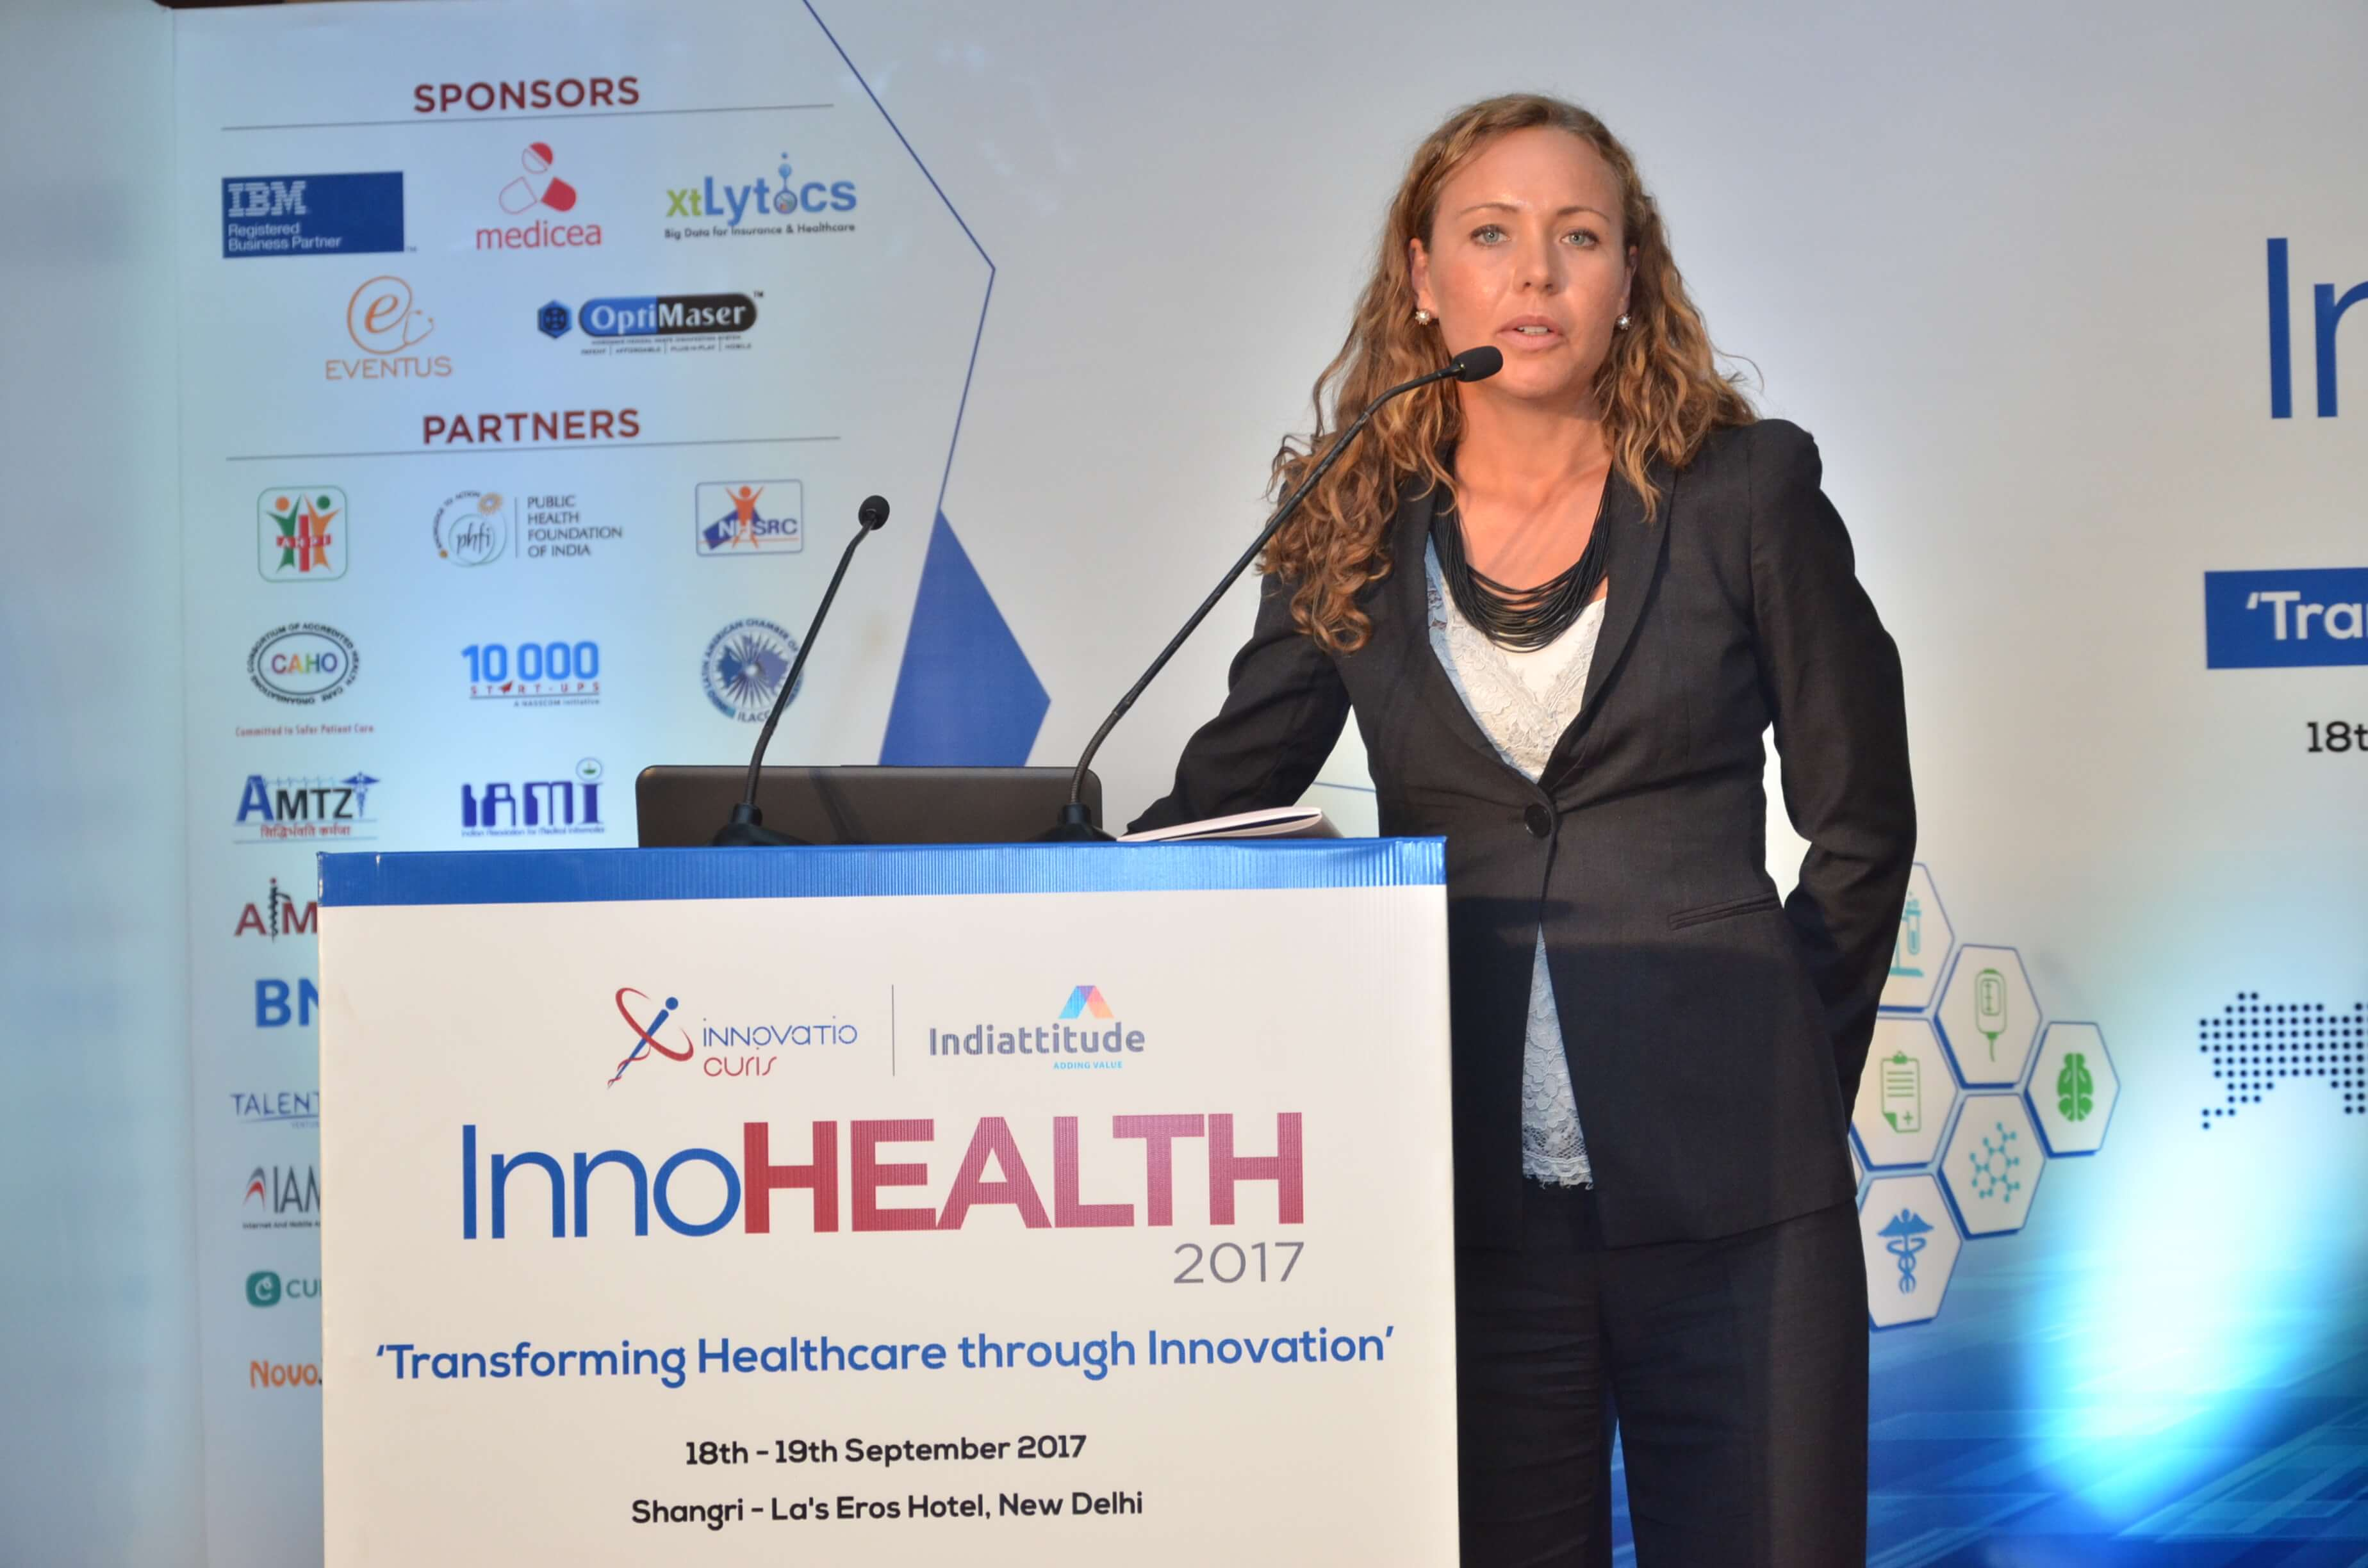 12.-Caroline-Danielson-pitching-Renapharma-at-InnoHEALTH-2017